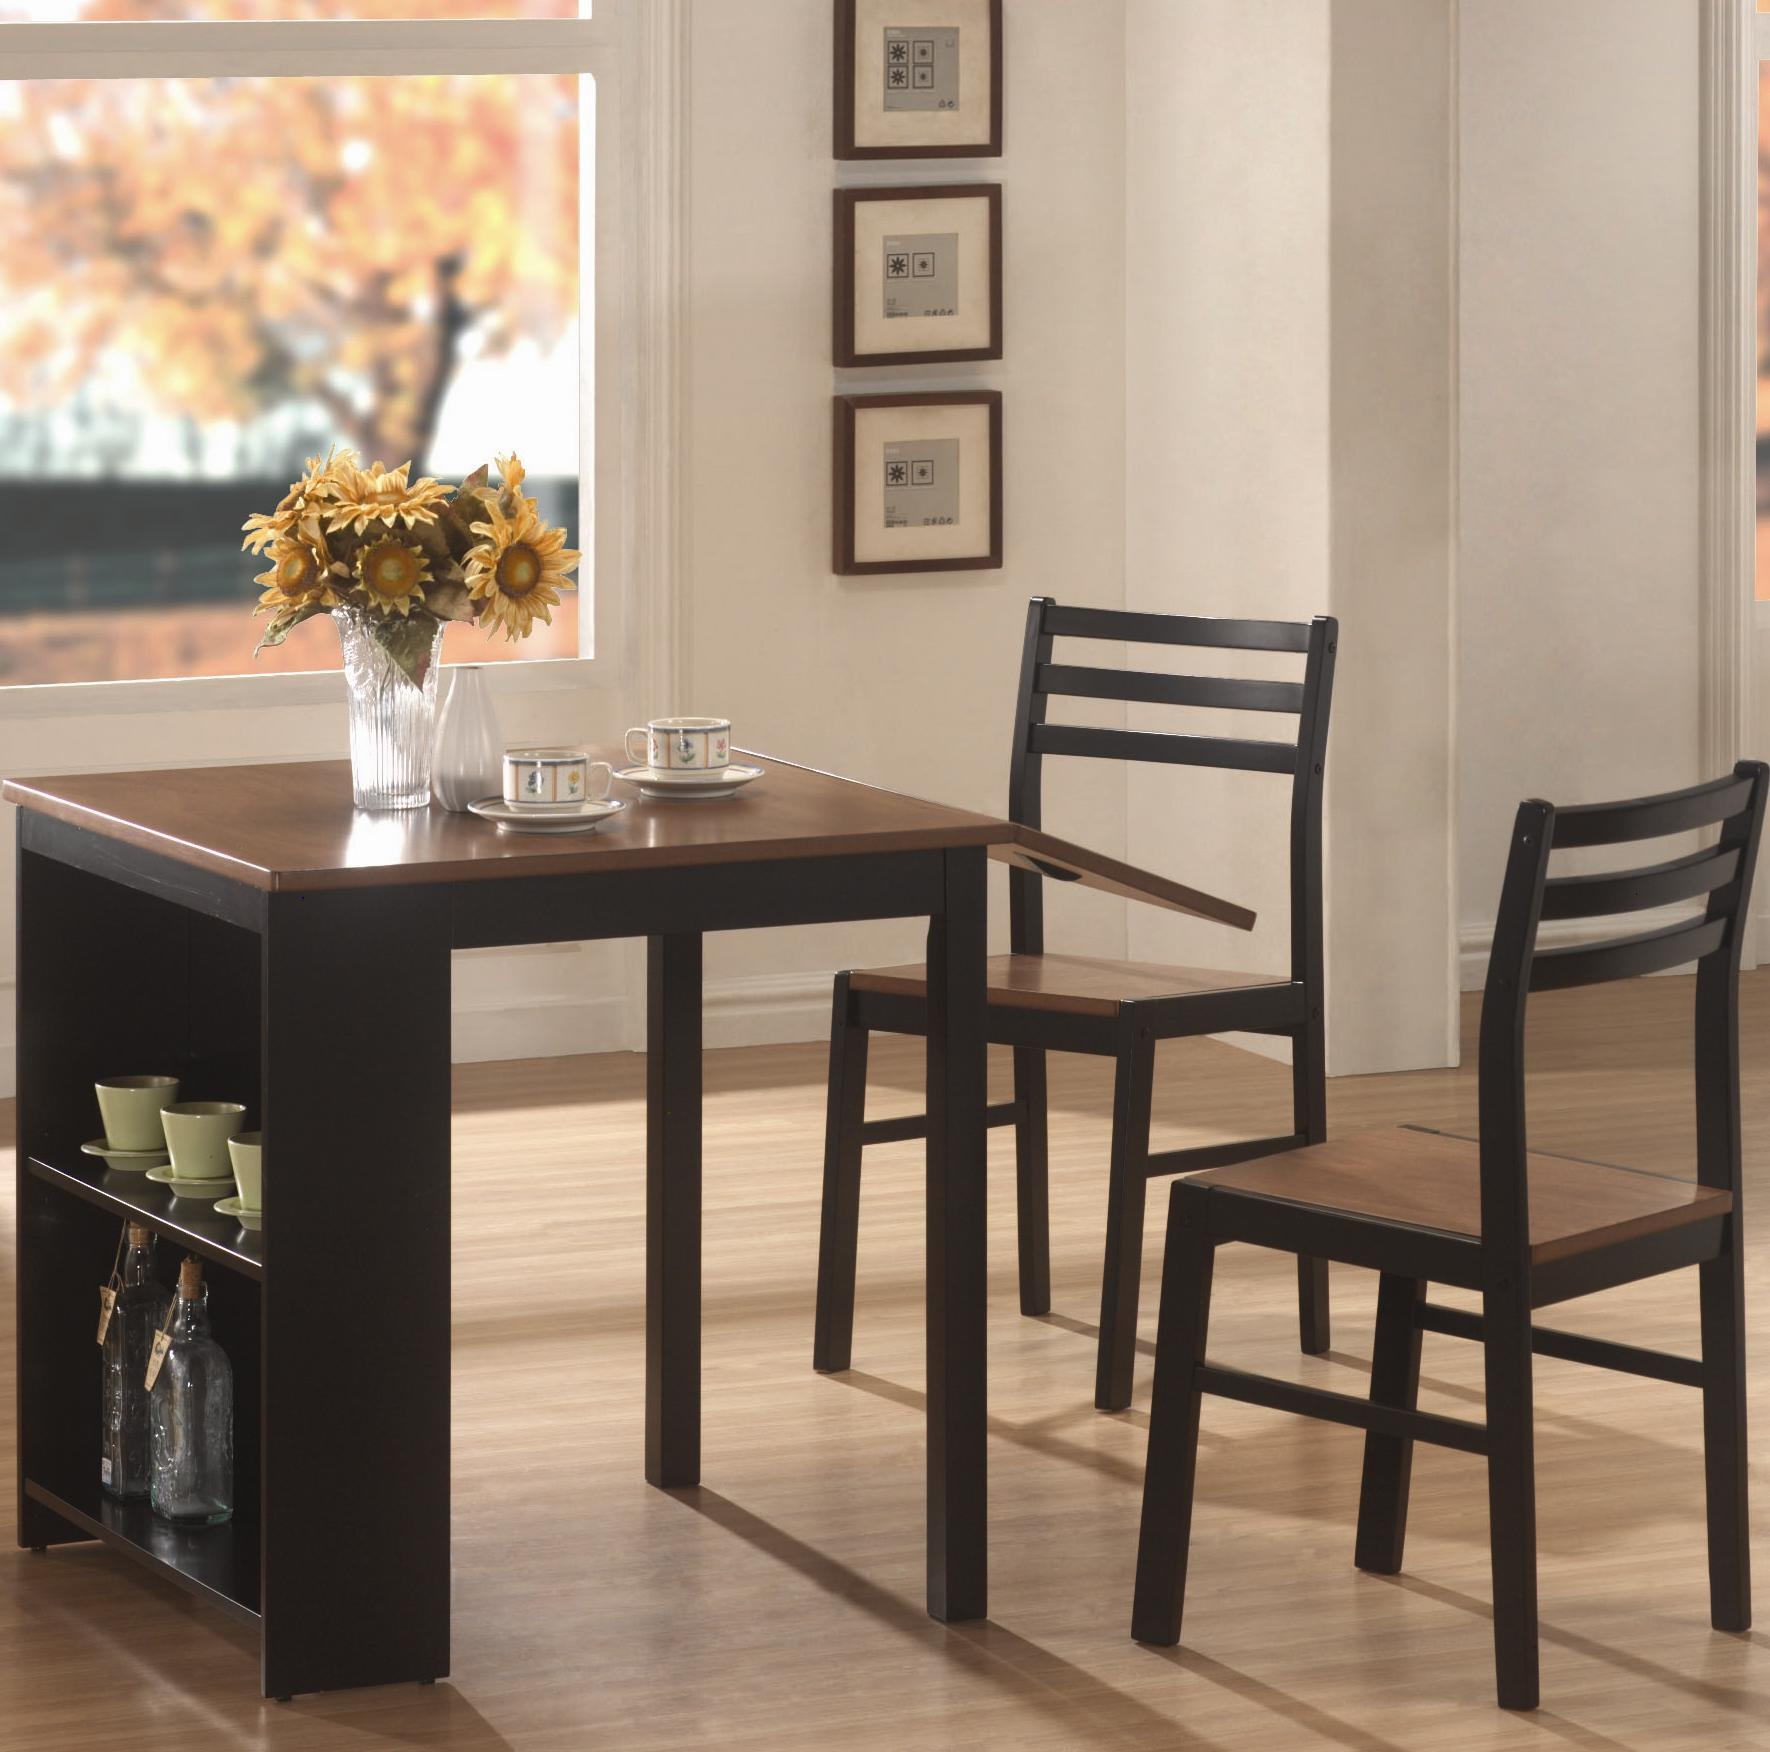 Permalink to Dining Room Sets For Small Kitchens